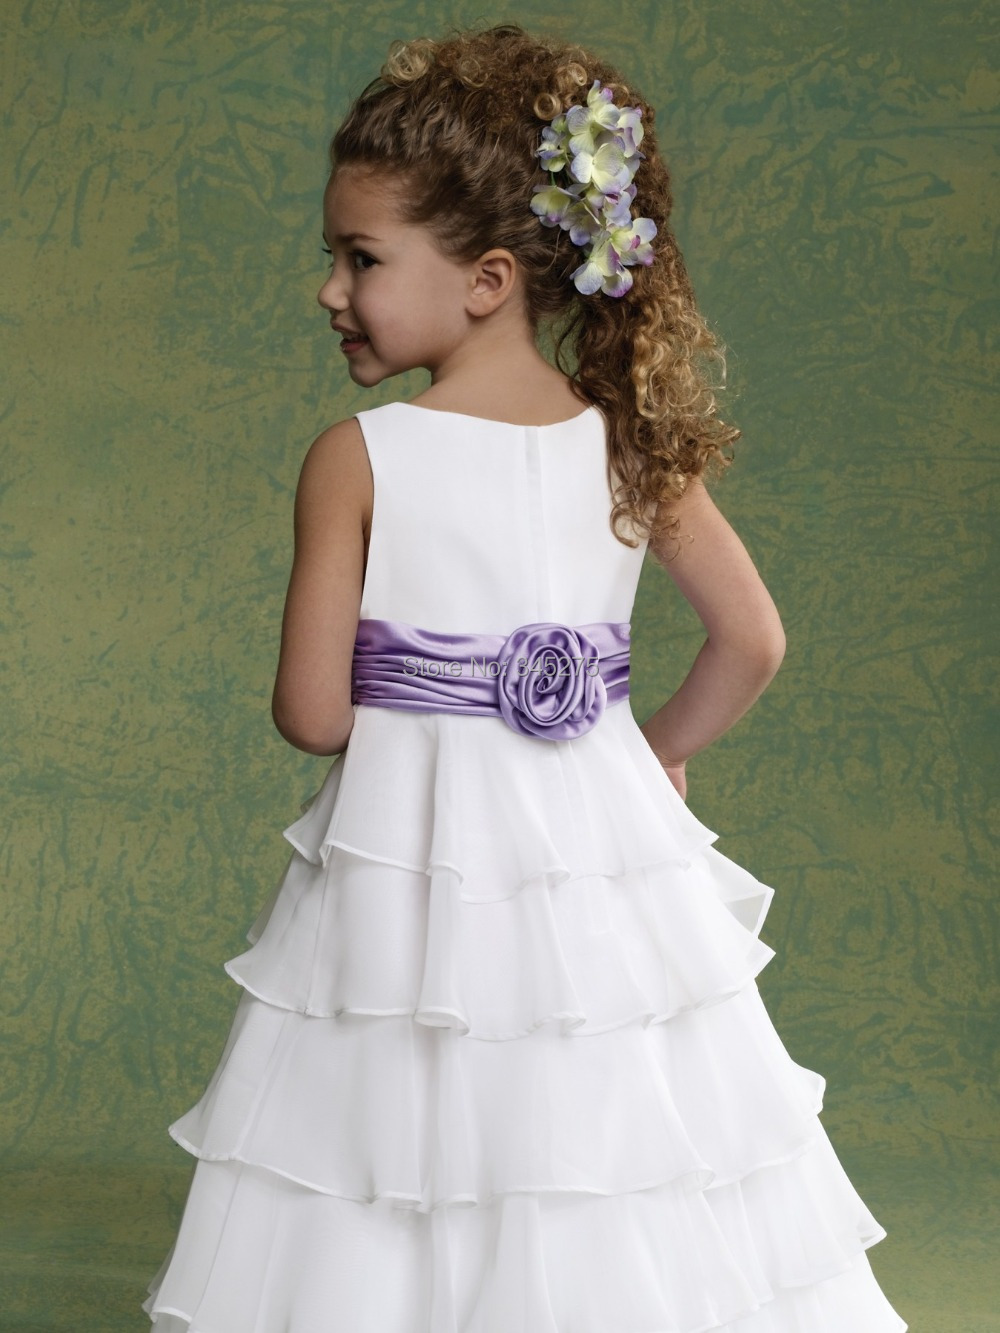 Bridesmaid dresses for toddlers choice image braidsmaid dress childrens bridesmaid dress patterns choice image braidsmaid ribbon dresses for girls fashion dresses ribbon dresses for ombrellifo Gallery